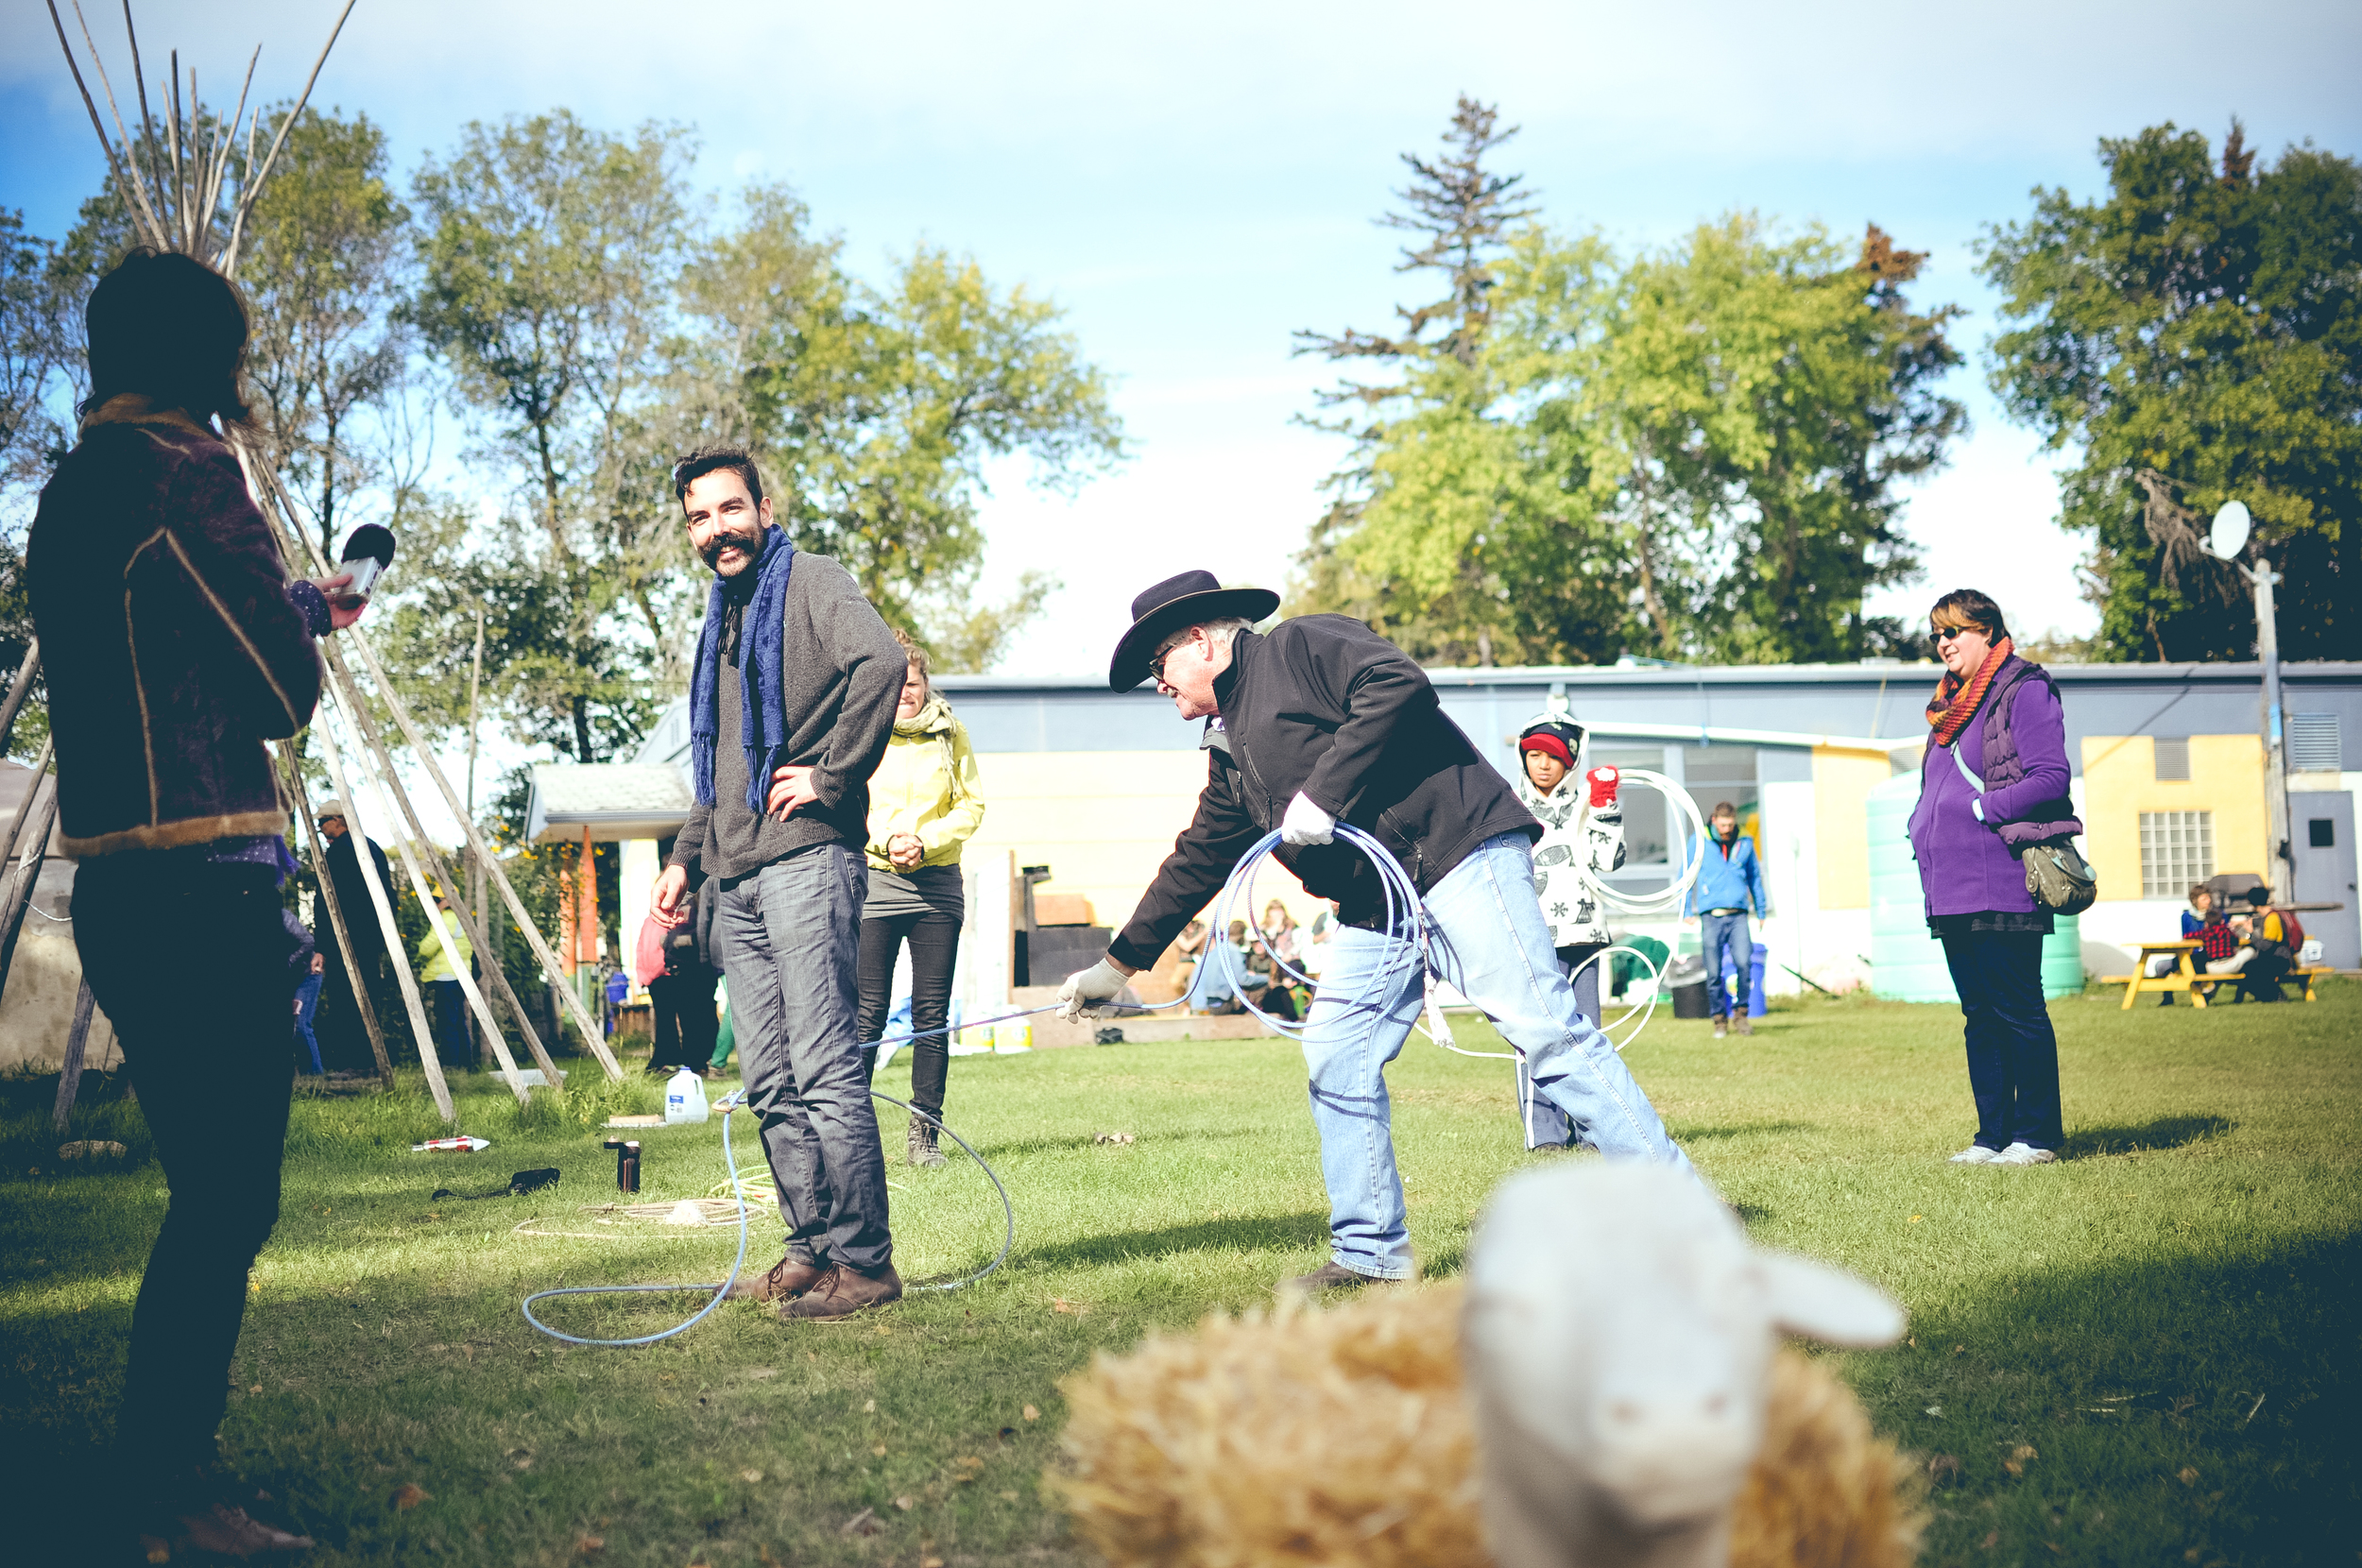 Here's Bill demonstrating how to rope livestock by the feet... err hooves.